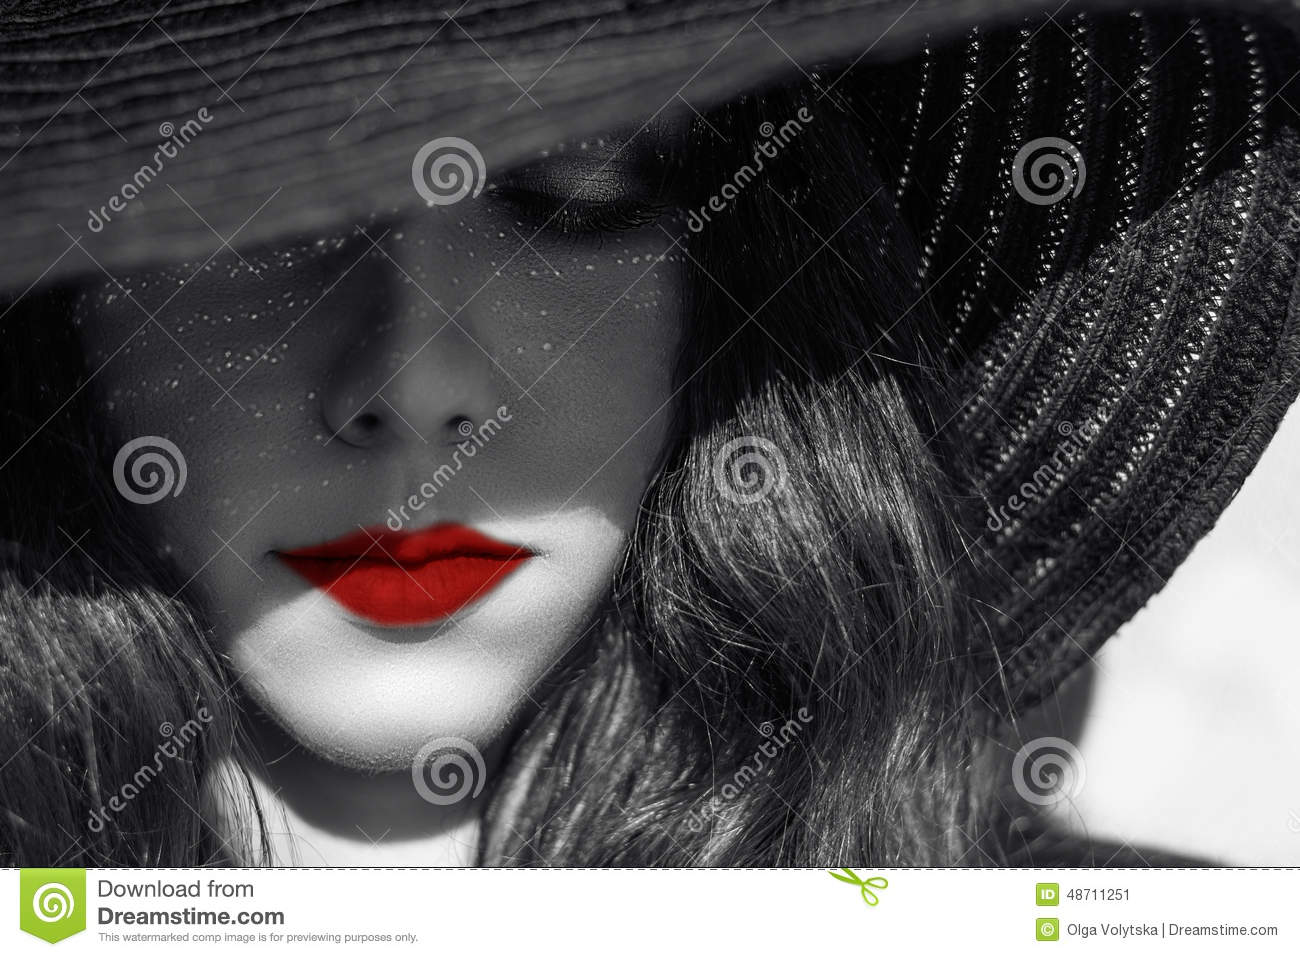 8ed826492e5 Mysterious woman in black hat. Red lips. Portrait of mysterious beautiful  young woman with